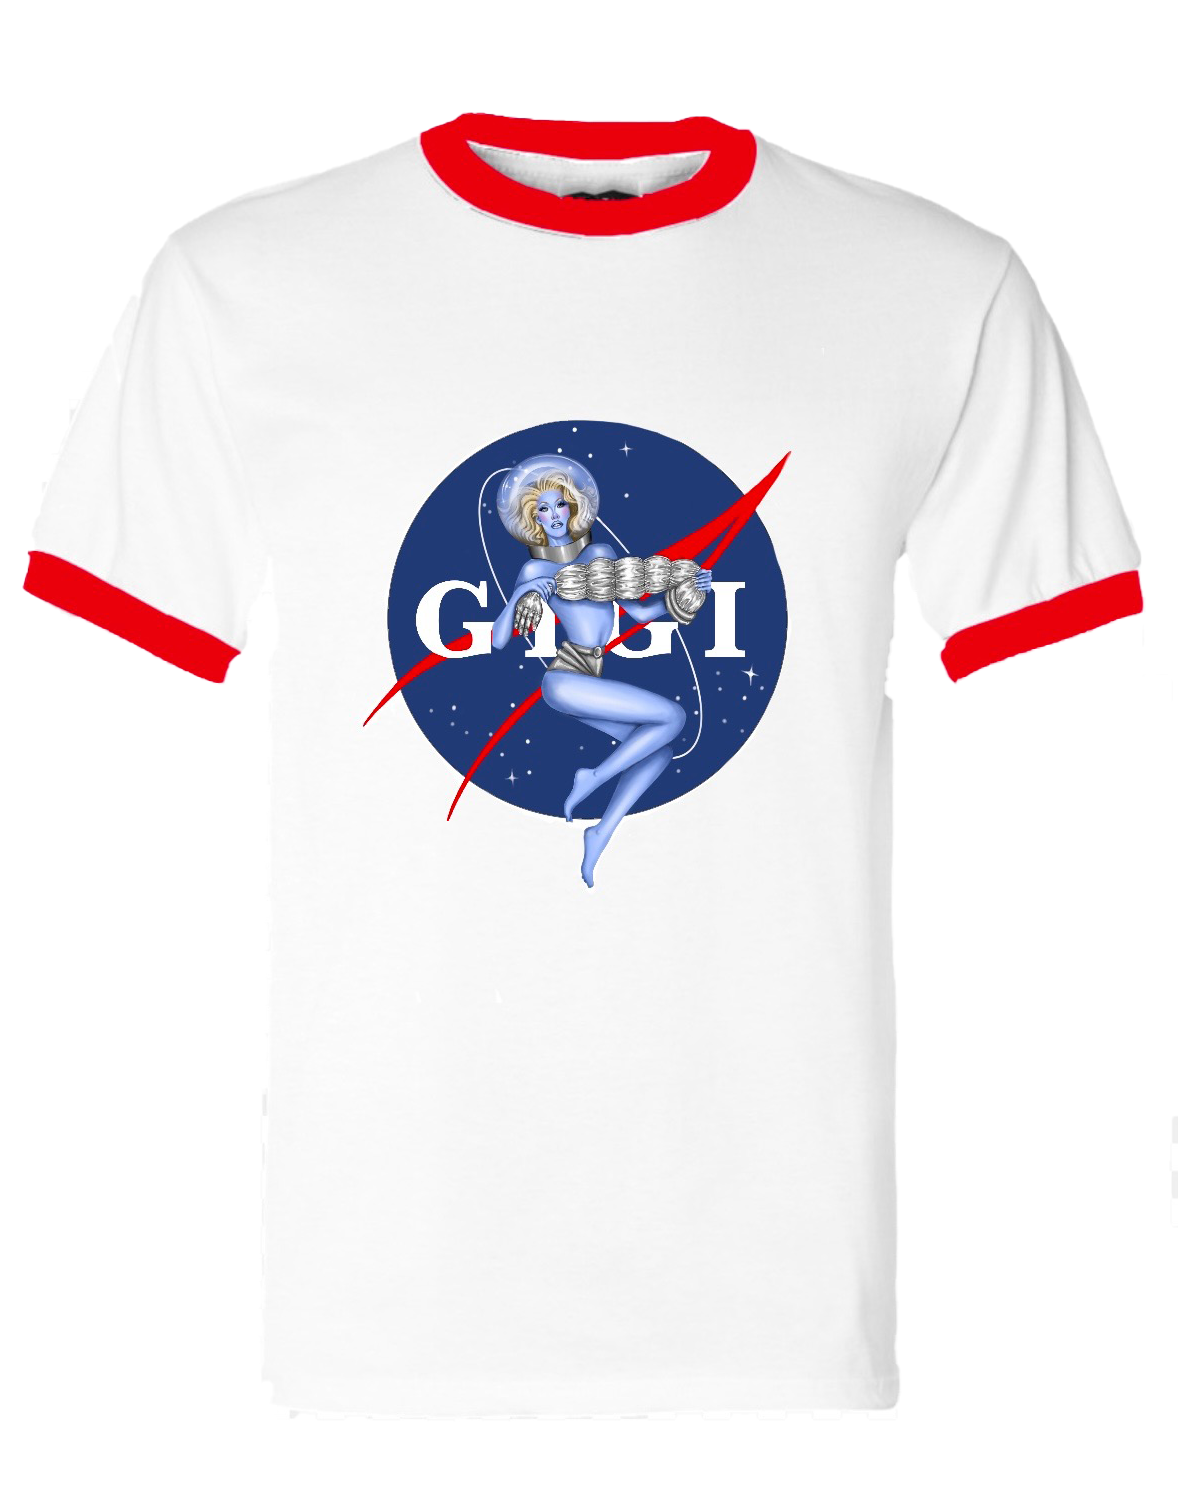 """One Small Step for Gigi"" T Shirt"